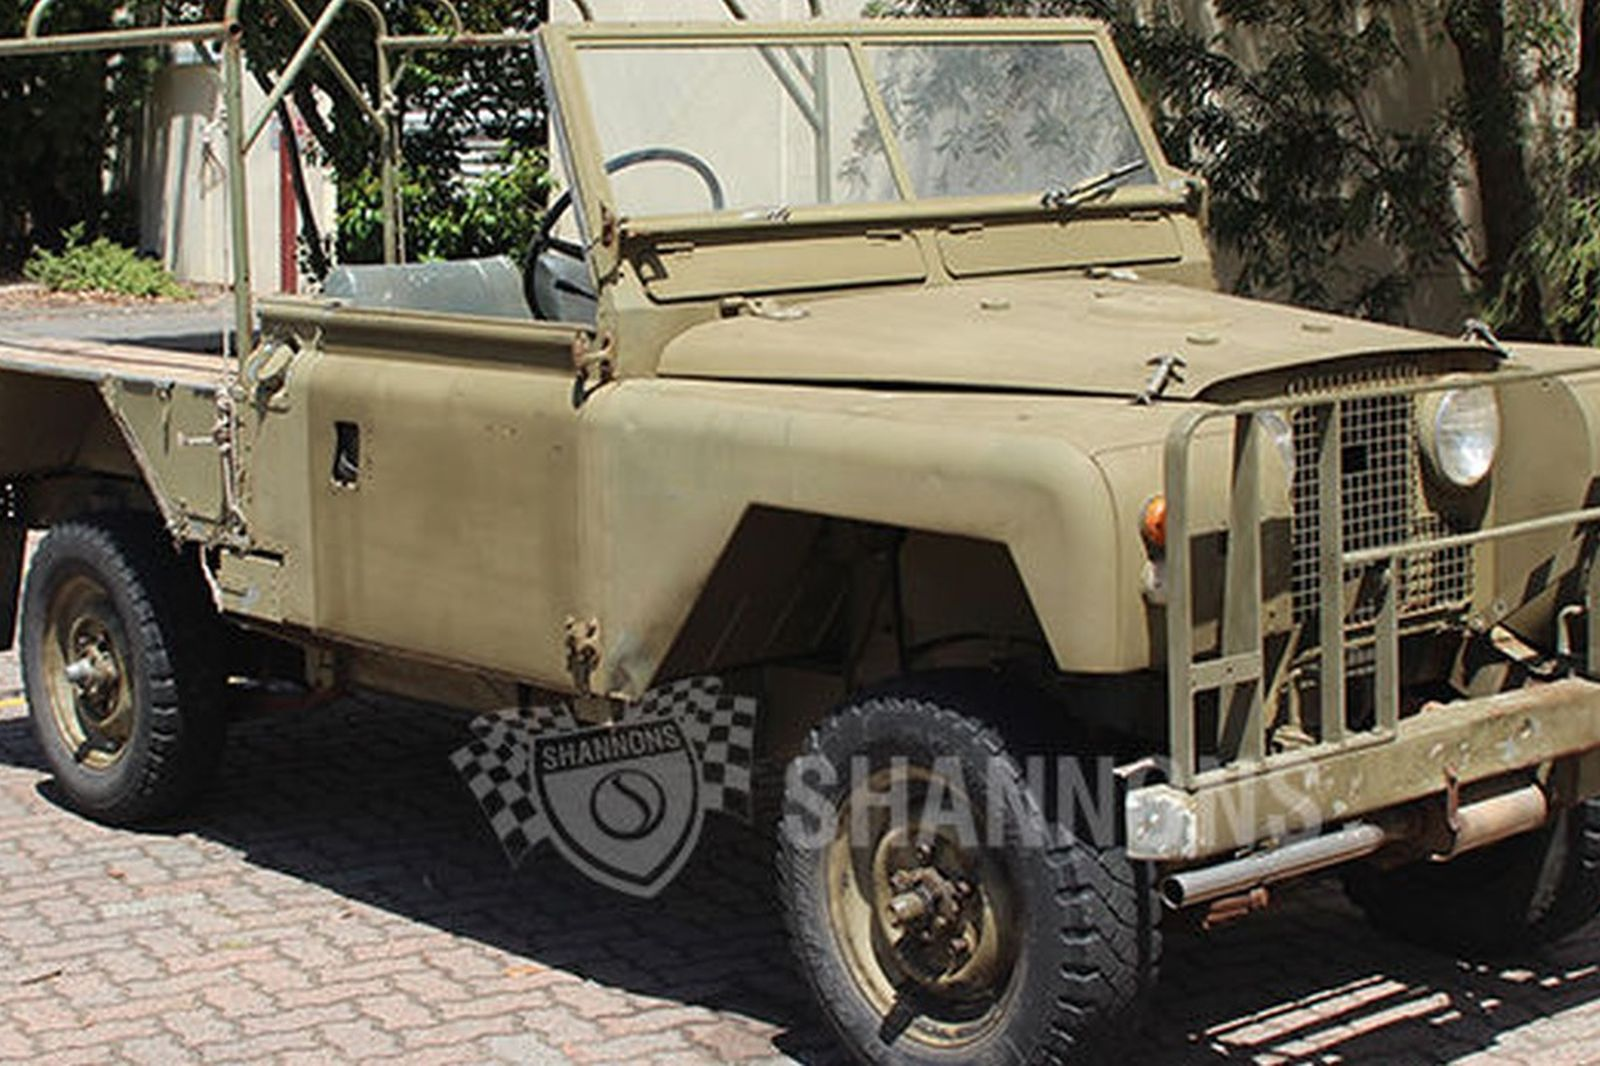 1967-landrover-2a-109-workshop-utility Online Army Form Submit on